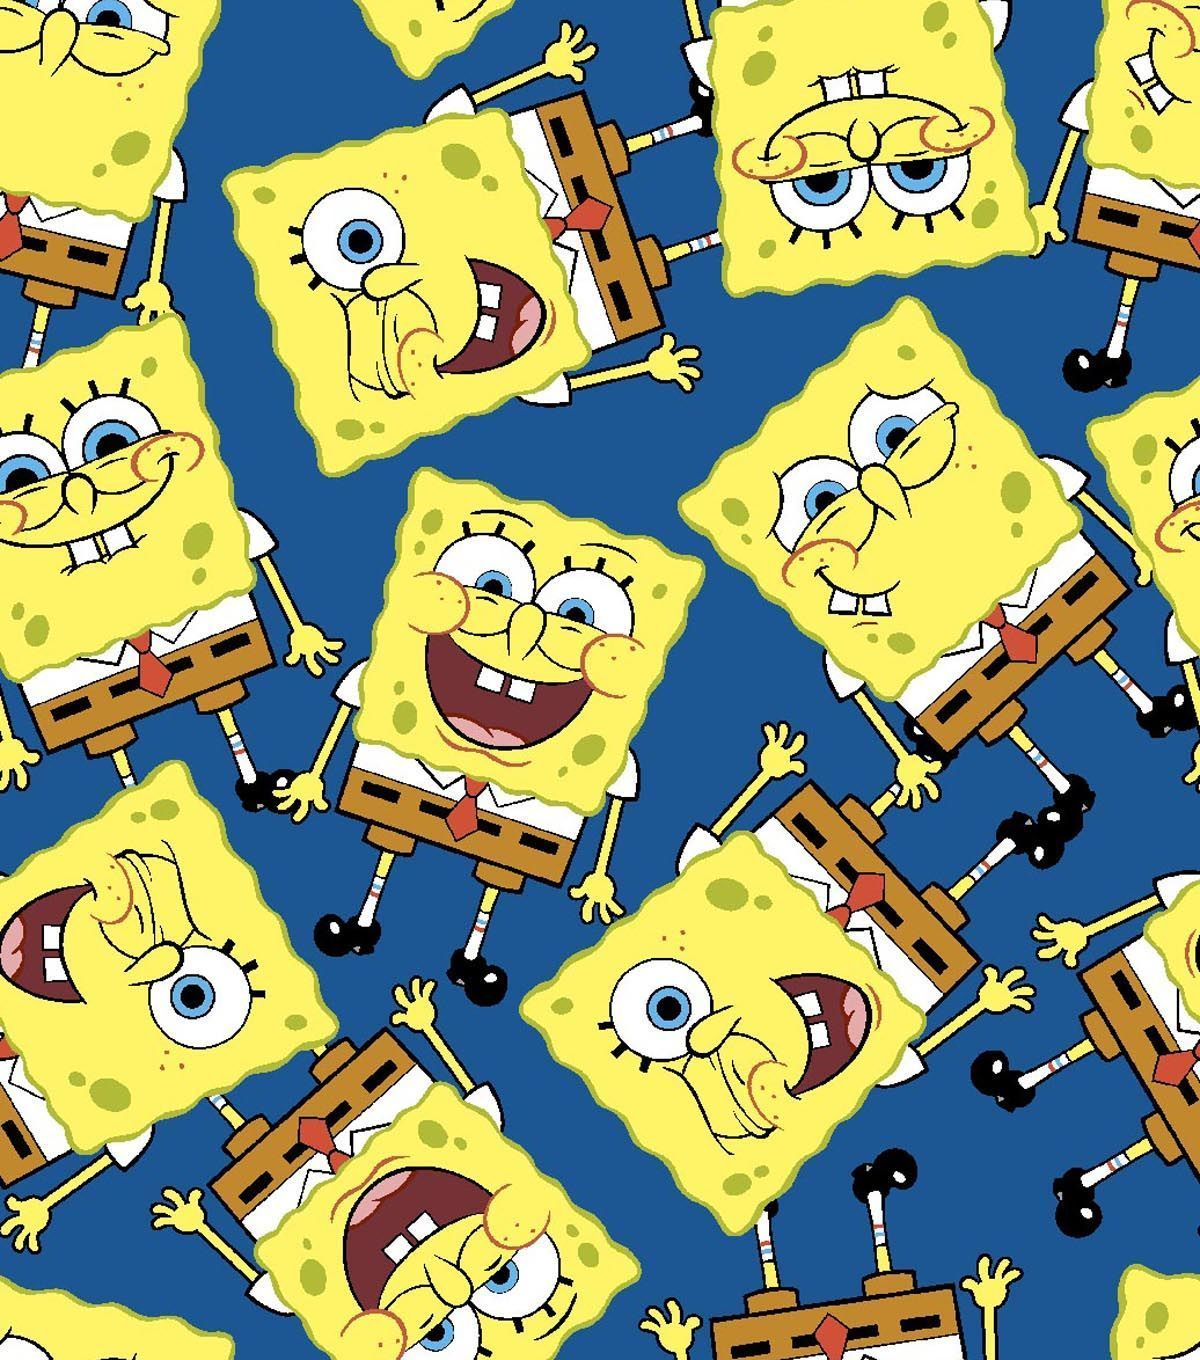 Nickelodeon Spongebob Packed Cotton Fabric Spongebob Cotton And